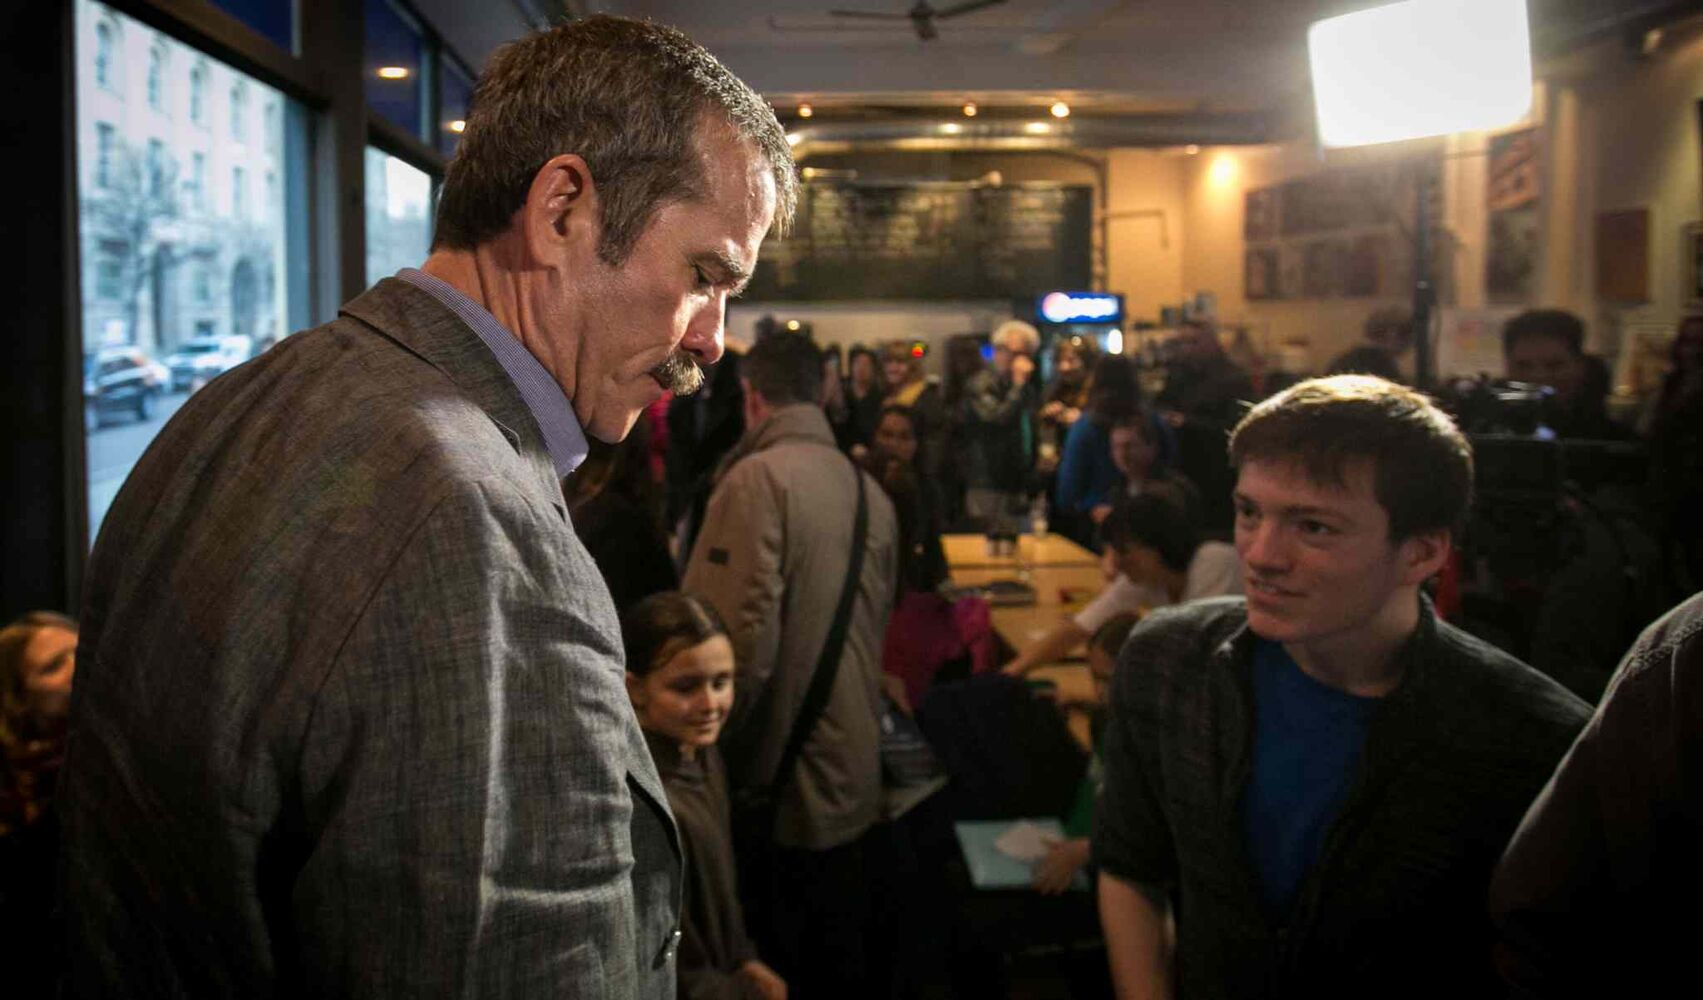 Col. Chris Hadfield leaves through a crowd of fans who packed the Winnipeg Free Press News Café on Wednesday to see the Canadian astronaut in person. (Melissa Tait / Winnipeg Free Press)